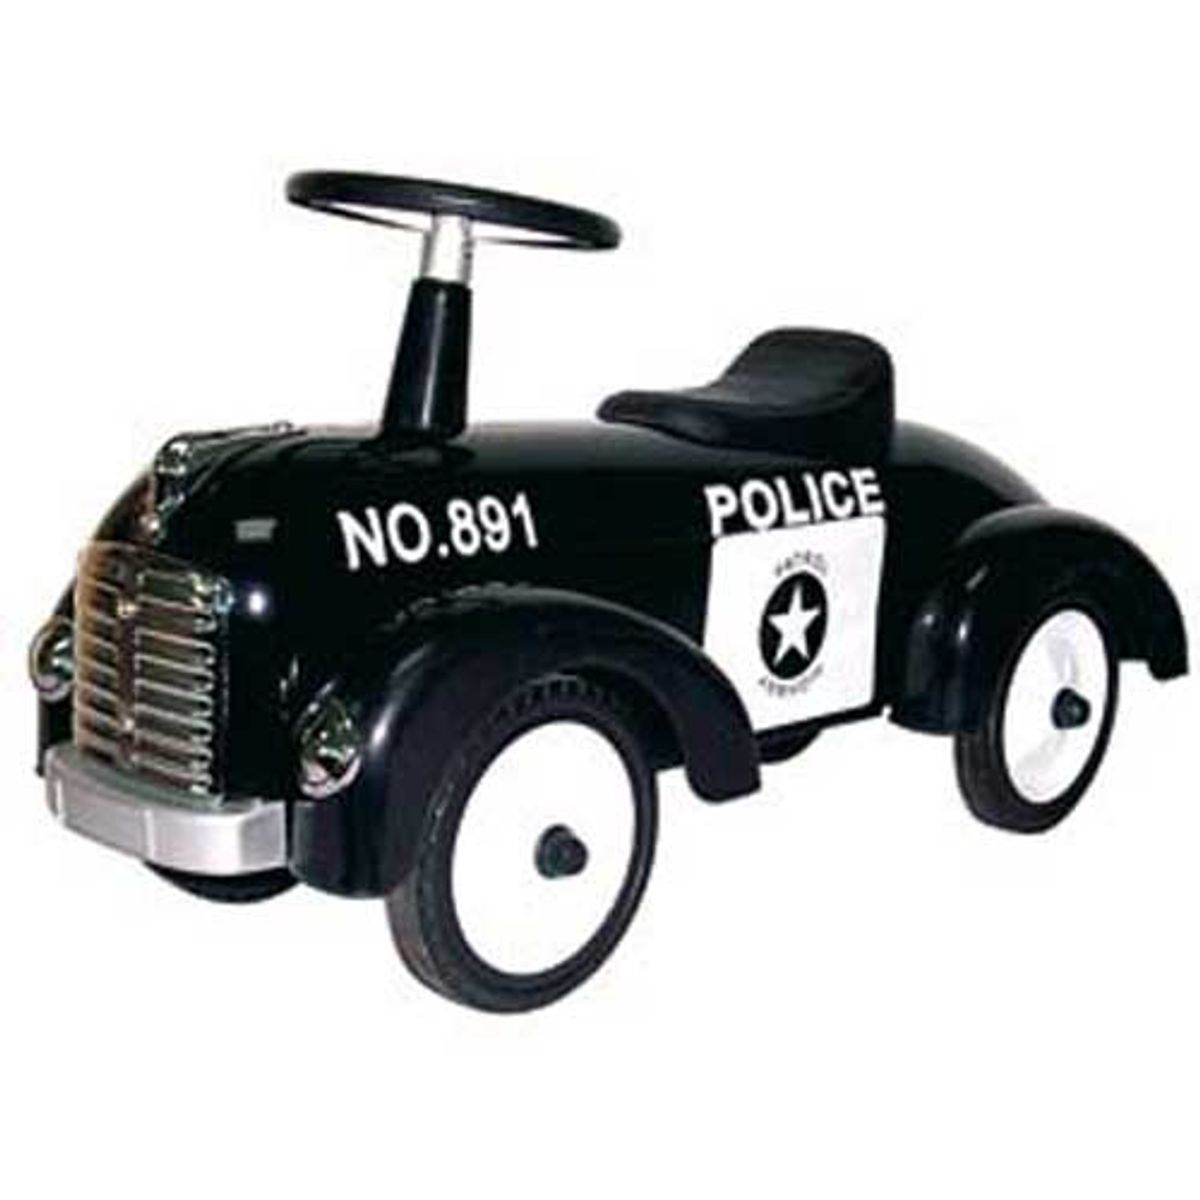 voiture de police pour enfant r tro en m tal noir decoclico. Black Bedroom Furniture Sets. Home Design Ideas